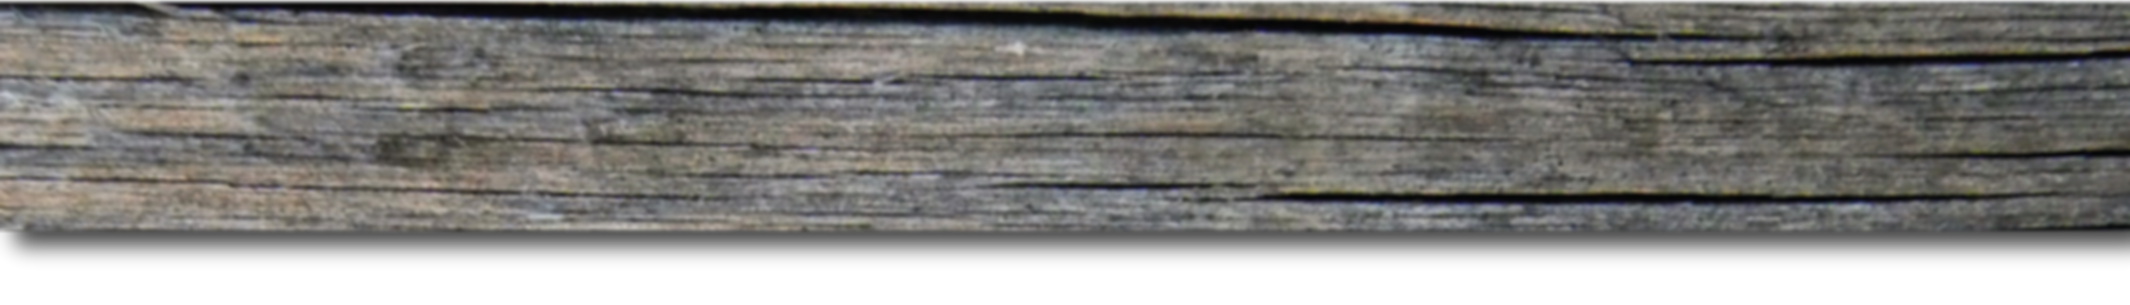 driftwood strip-01.png